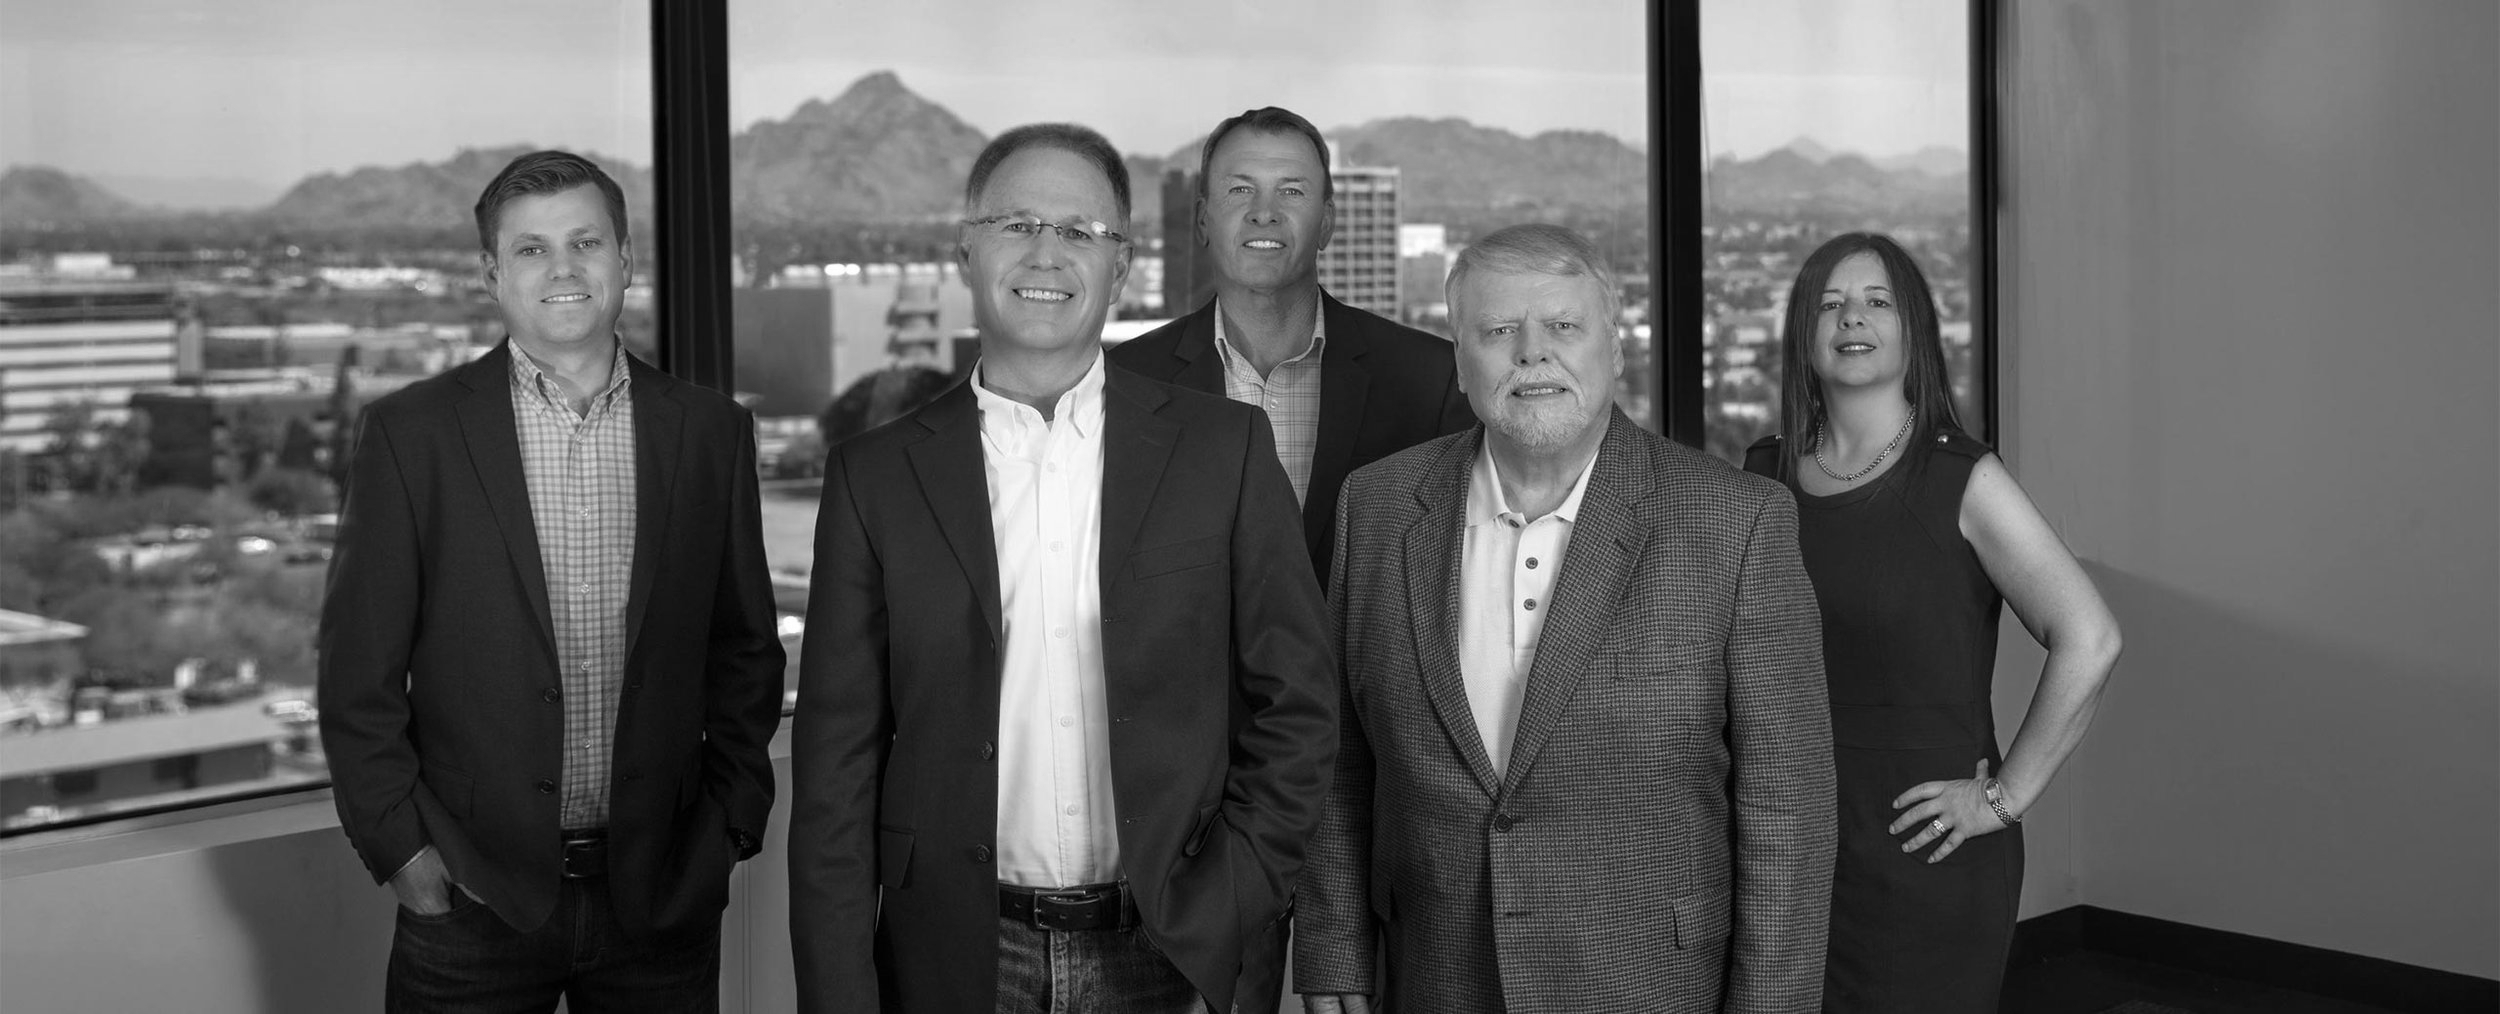 The Brookfield Communities team at our Phoenix headquarters.